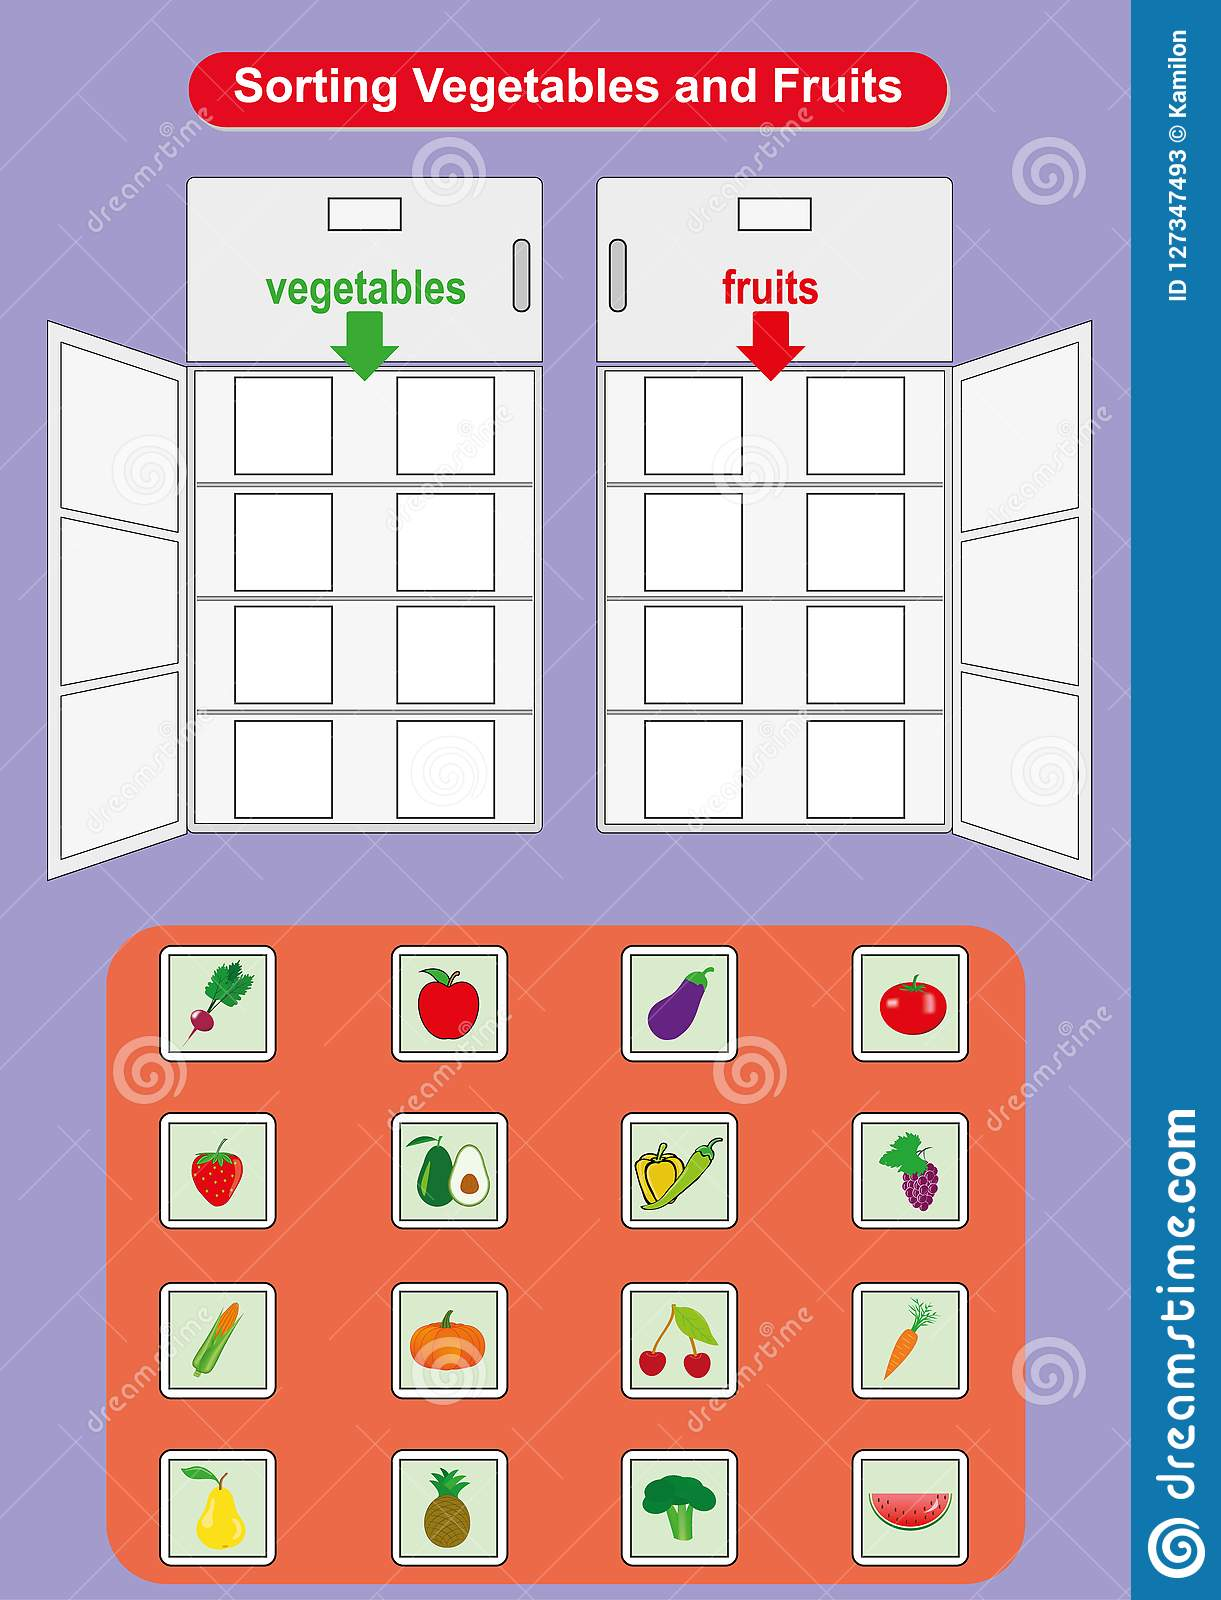 Sorting Fruits And Vegetables In Refrigerator Worksheet